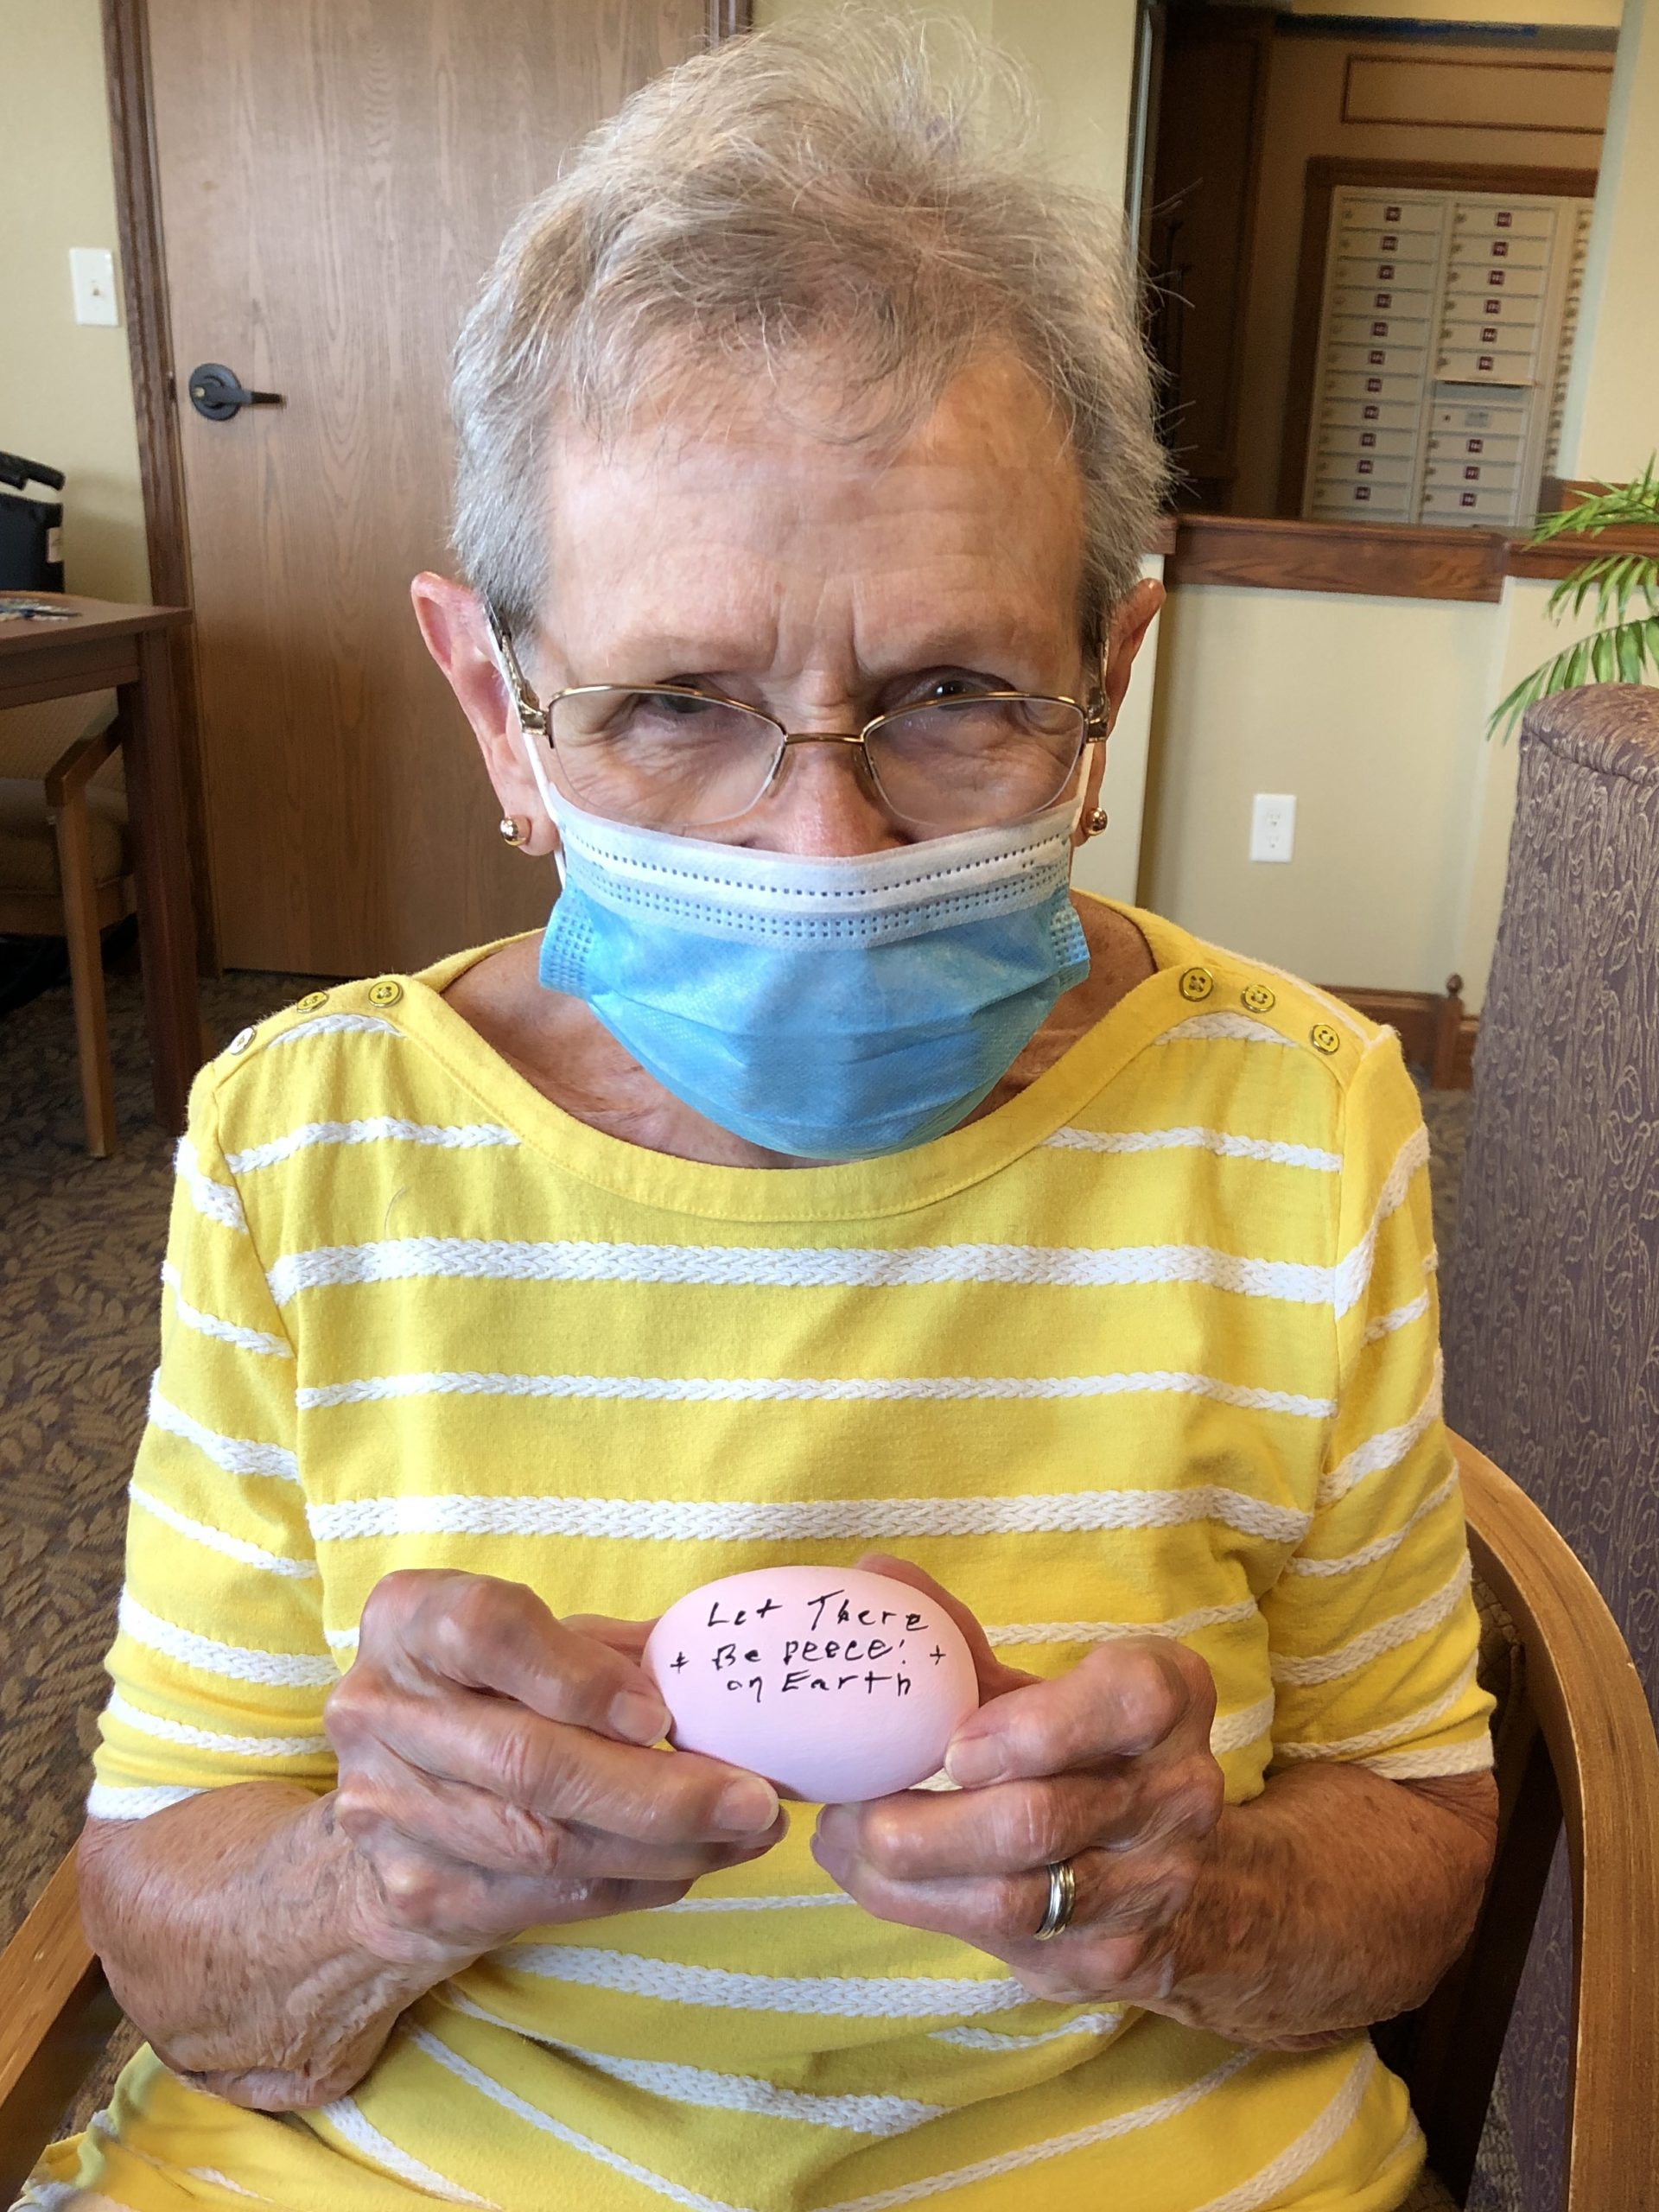 Mary painted a beautiful rock for our Kindness Project.